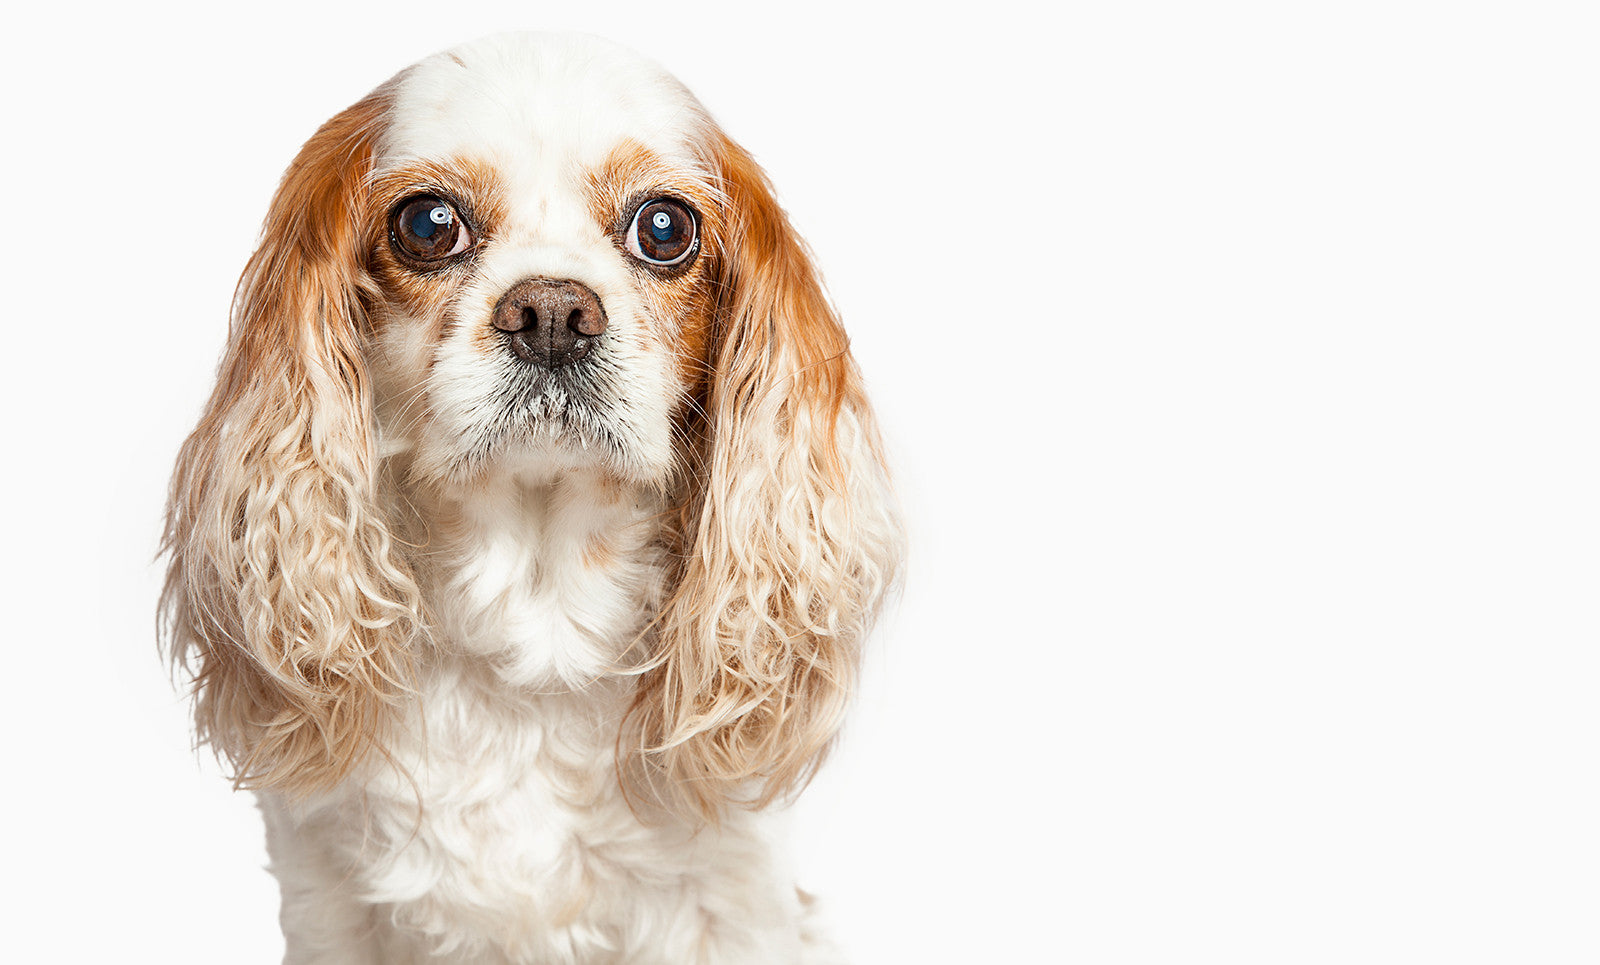 SENIOR CARE FOR CAVALIER KING CHARLES SPANIEL